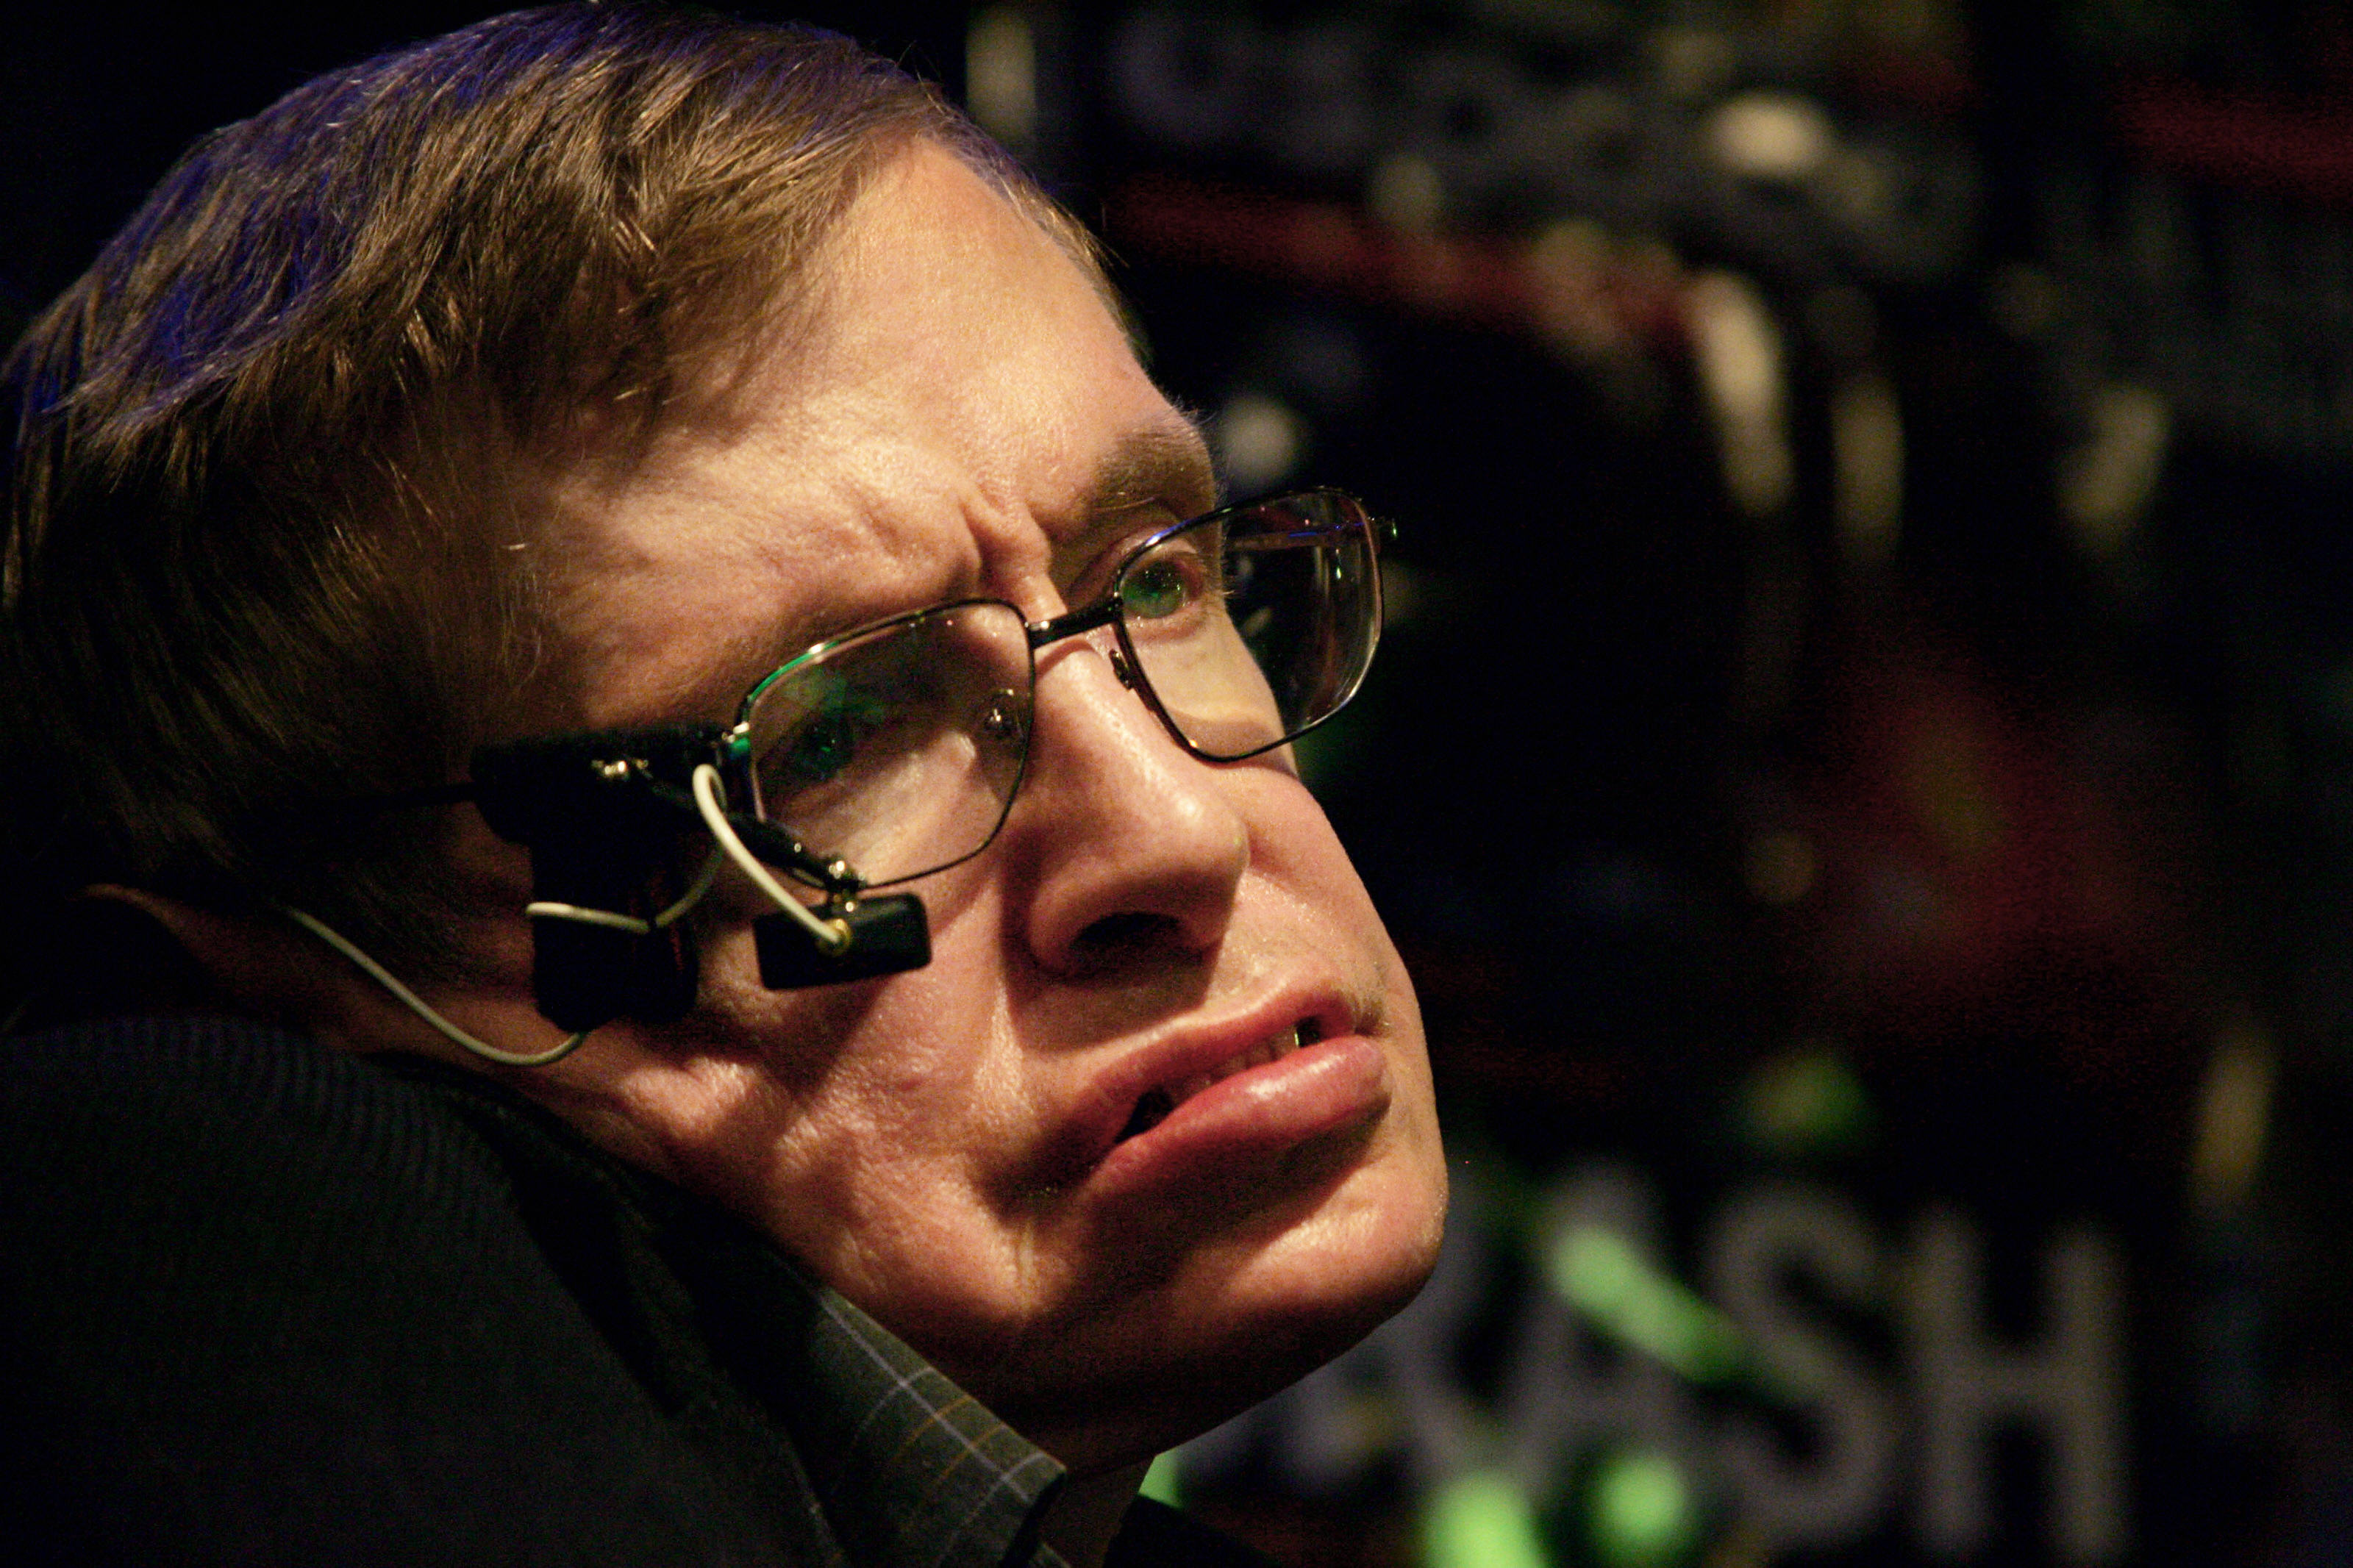 Stephen Hawking's final book was just announced, and it gives us a look inside this legend's mind